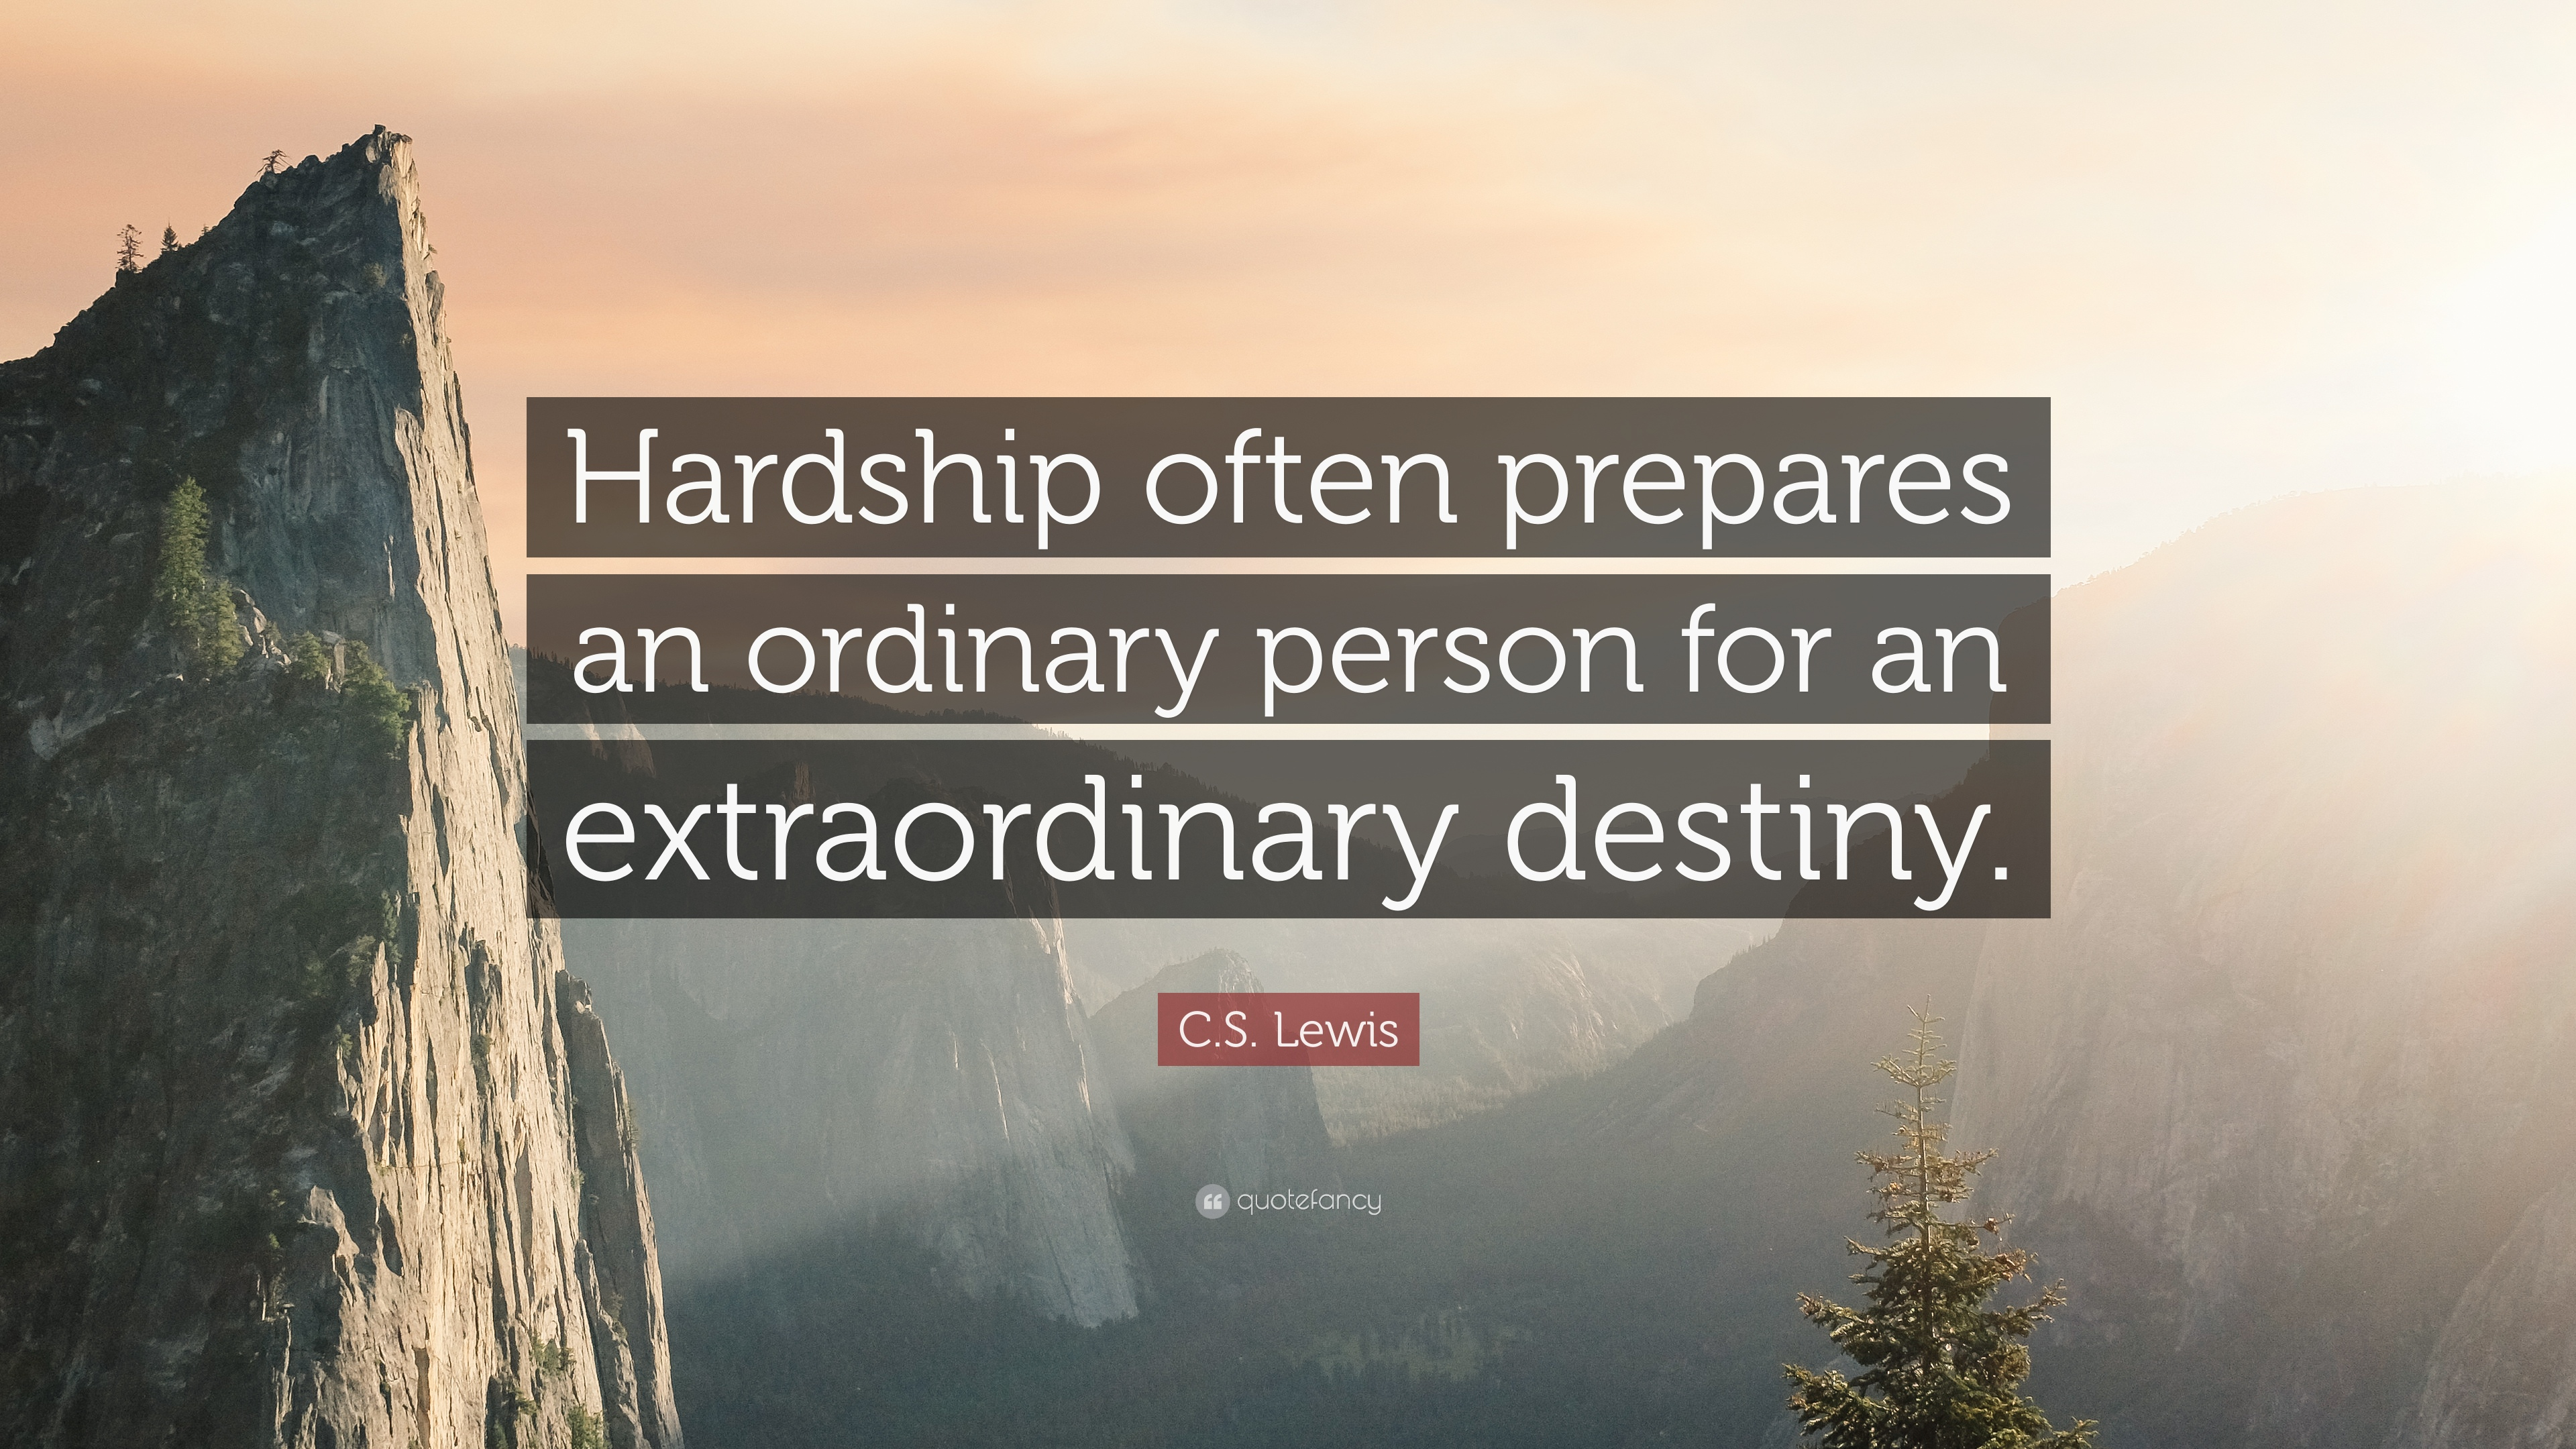 quotes about strength 23 quotefancy quotes about strength hardship often prepares an ordinary person for an extraordinary destiny